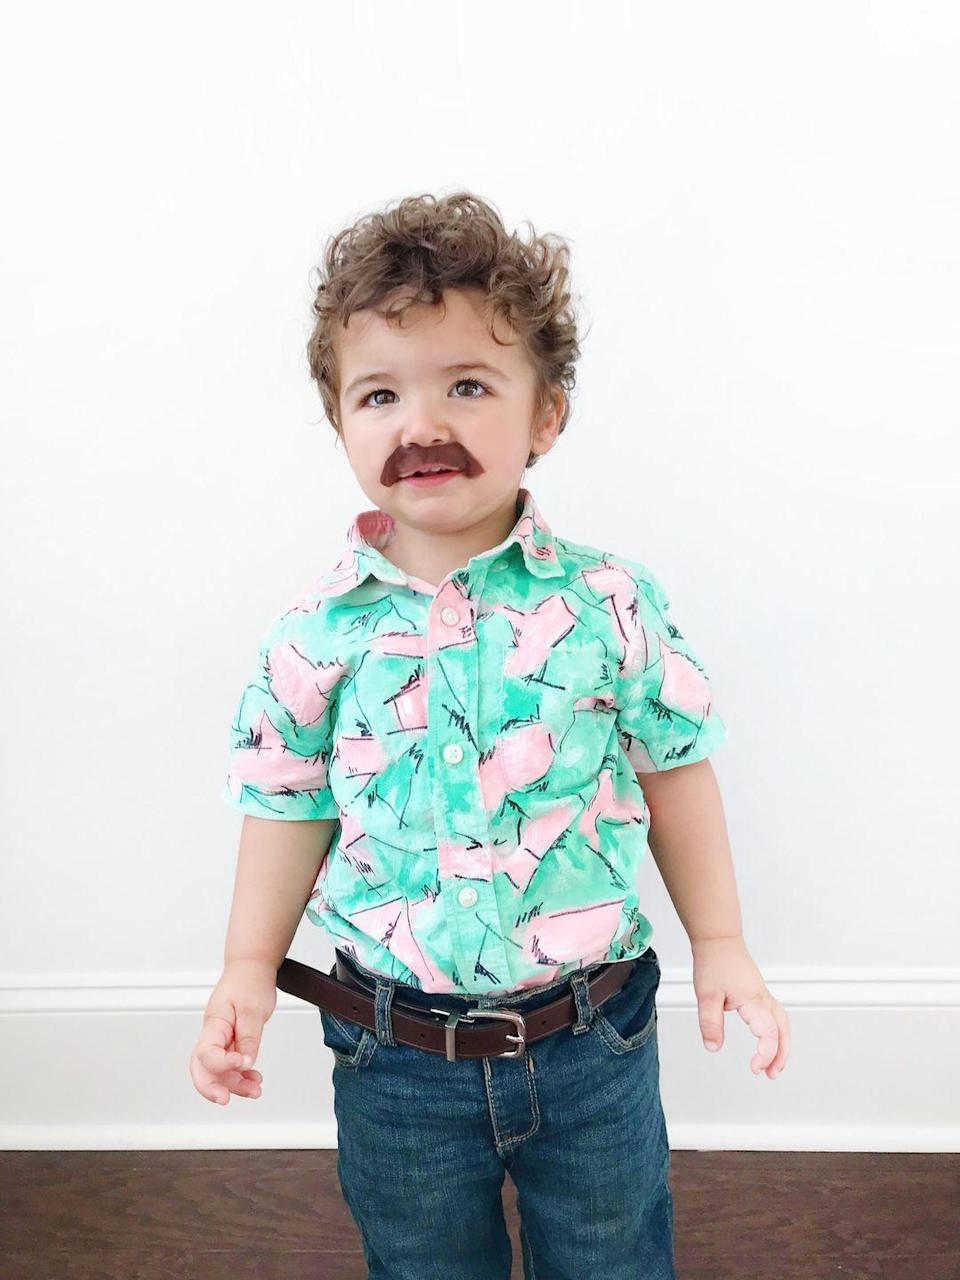 """<p>Jim Hopper<em>'s</em> pink and green date night shirt became an instant classic when Season 3 of the '80s-inspired hit show <em>Stranger Things</em> premiered on Netflix last year. Now you can get the look for the little Hopper in your life with this easy tutorial. </p><p><strong>See more at <a href=""""https://www.loveandlion.com/diy/diy-halloween-co"""" rel=""""nofollow noopener"""" target=""""_blank"""" data-ylk=""""slk:Love and Lion"""" class=""""link rapid-noclick-resp"""">Love and Lion</a>. </strong></p><p><a class=""""link rapid-noclick-resp"""" href=""""https://go.redirectingat.com?id=74968X1596630&url=https%3A%2F%2Fwww.walmart.com%2Fip%2FColor-Splash-Neon-Fabric-Paint-4-oz-Set-of-6%2F33396975&sref=https%3A%2F%2Fwww.thepioneerwoman.com%2Fholidays-celebrations%2Fg32645069%2F80s-halloween-costumes%2F"""" rel=""""nofollow noopener"""" target=""""_blank"""" data-ylk=""""slk:SHOP NEON FABRIC PAINT"""">SHOP NEON FABRIC PAINT</a></p>"""